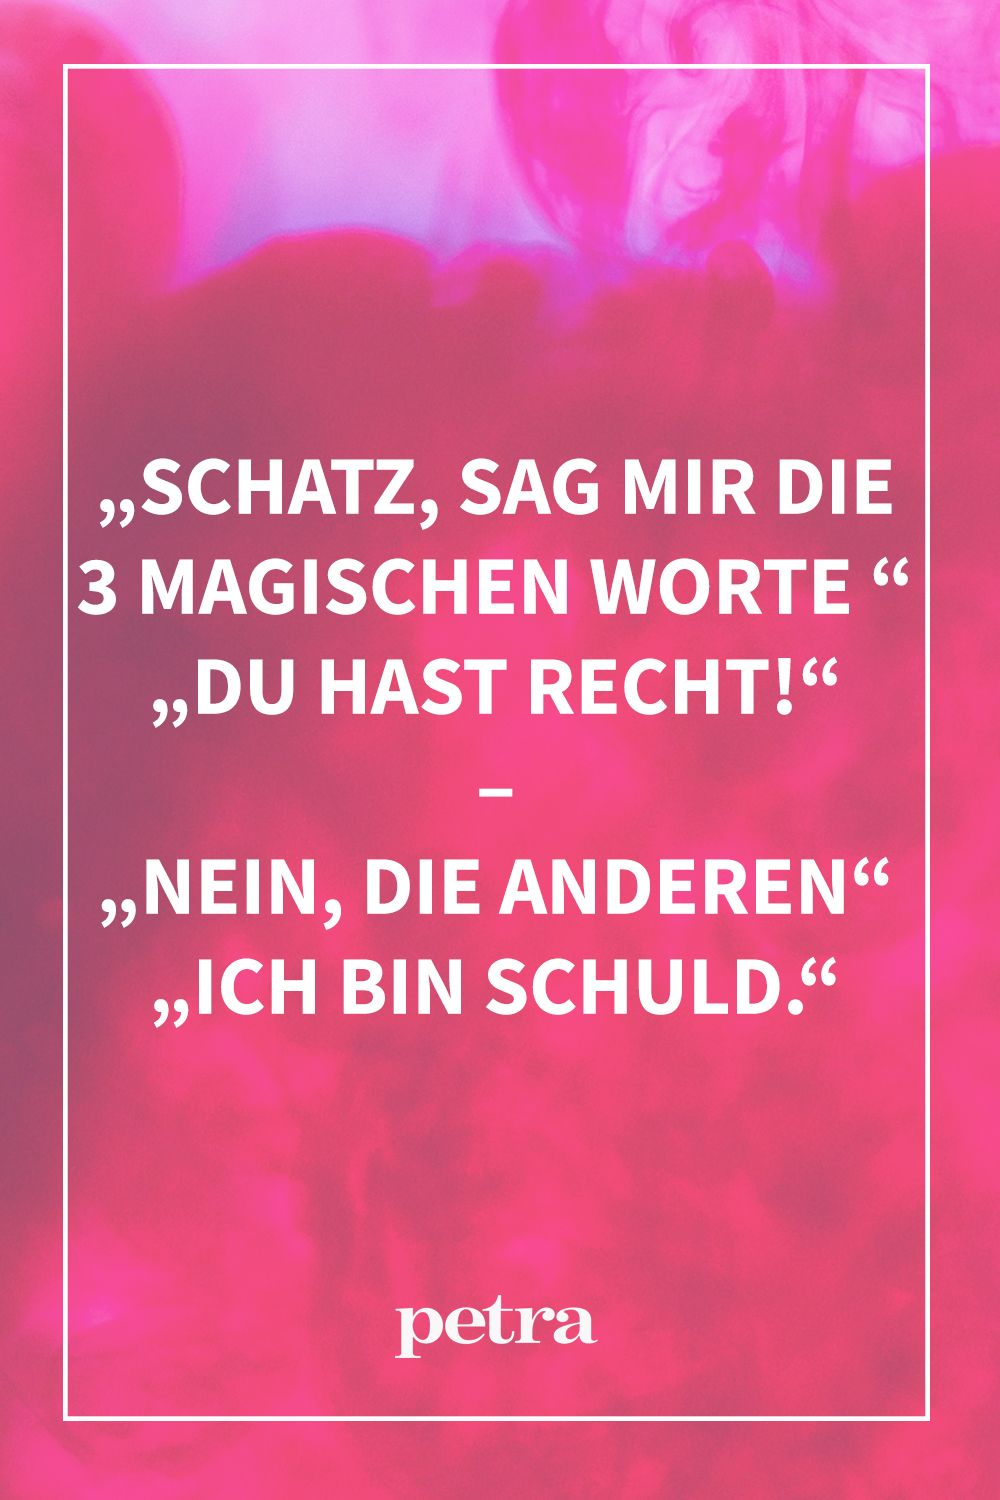 Photo of Spruch des Tages